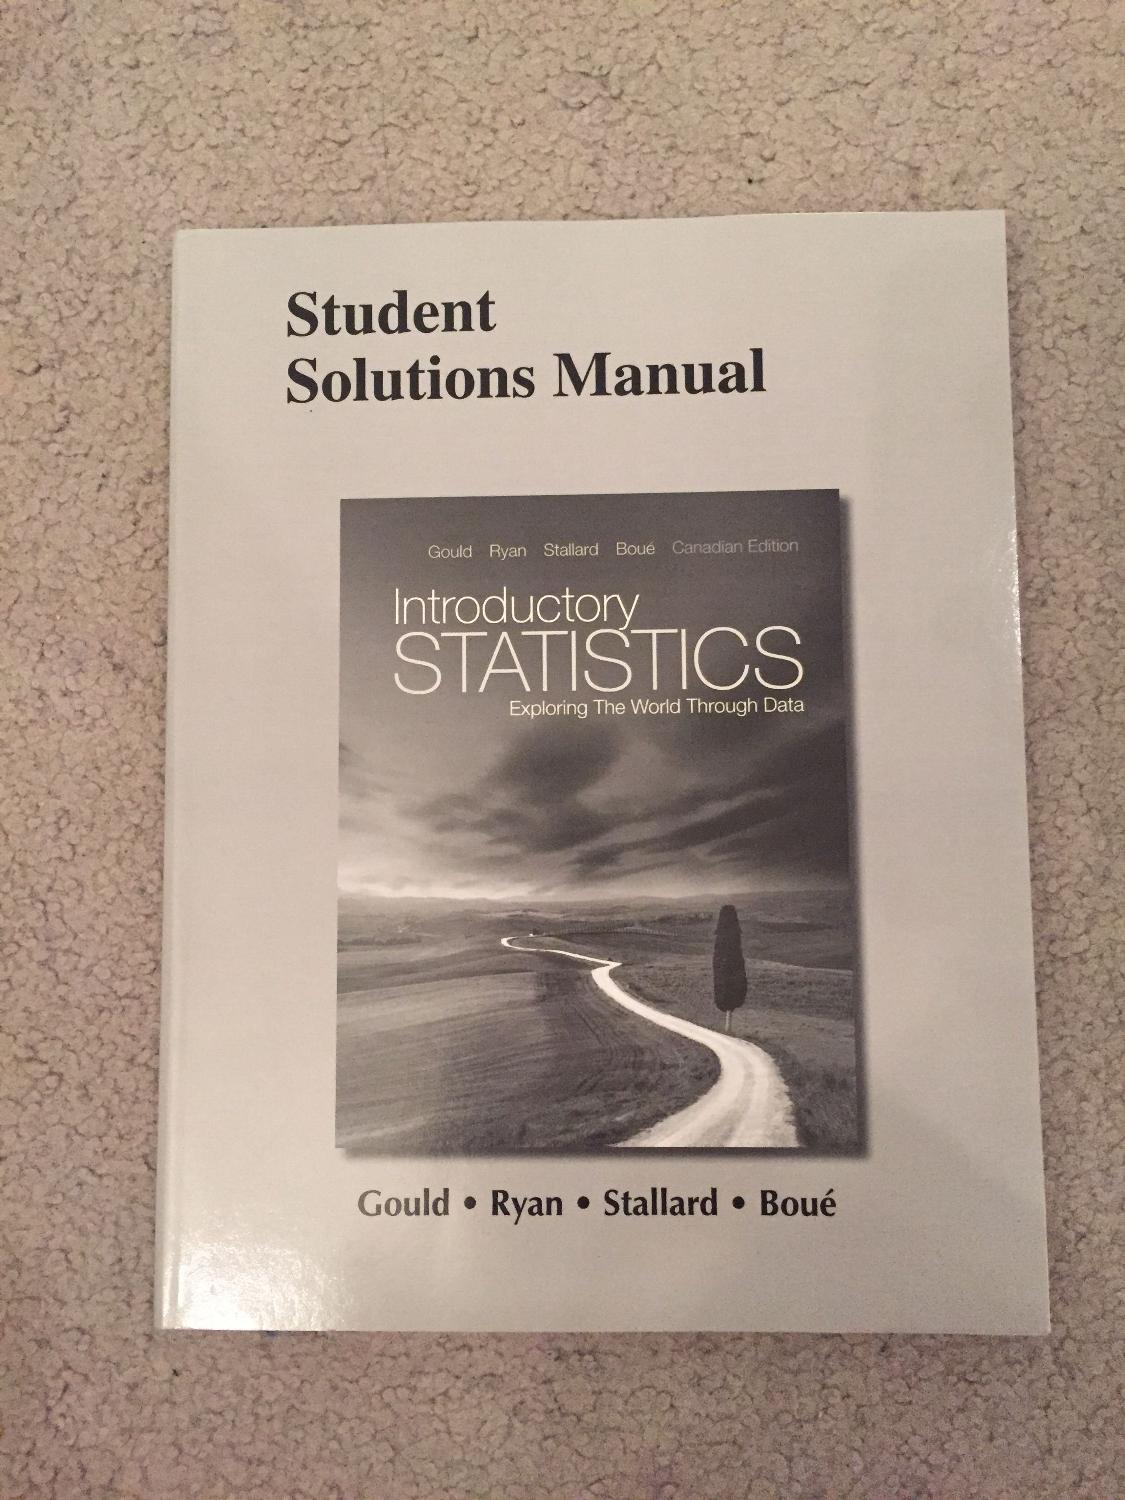 Best Student Solutions Manual For Introductory Statistics By Robert Gould,  Et Al. for sale in Calgary, Alberta for 2018